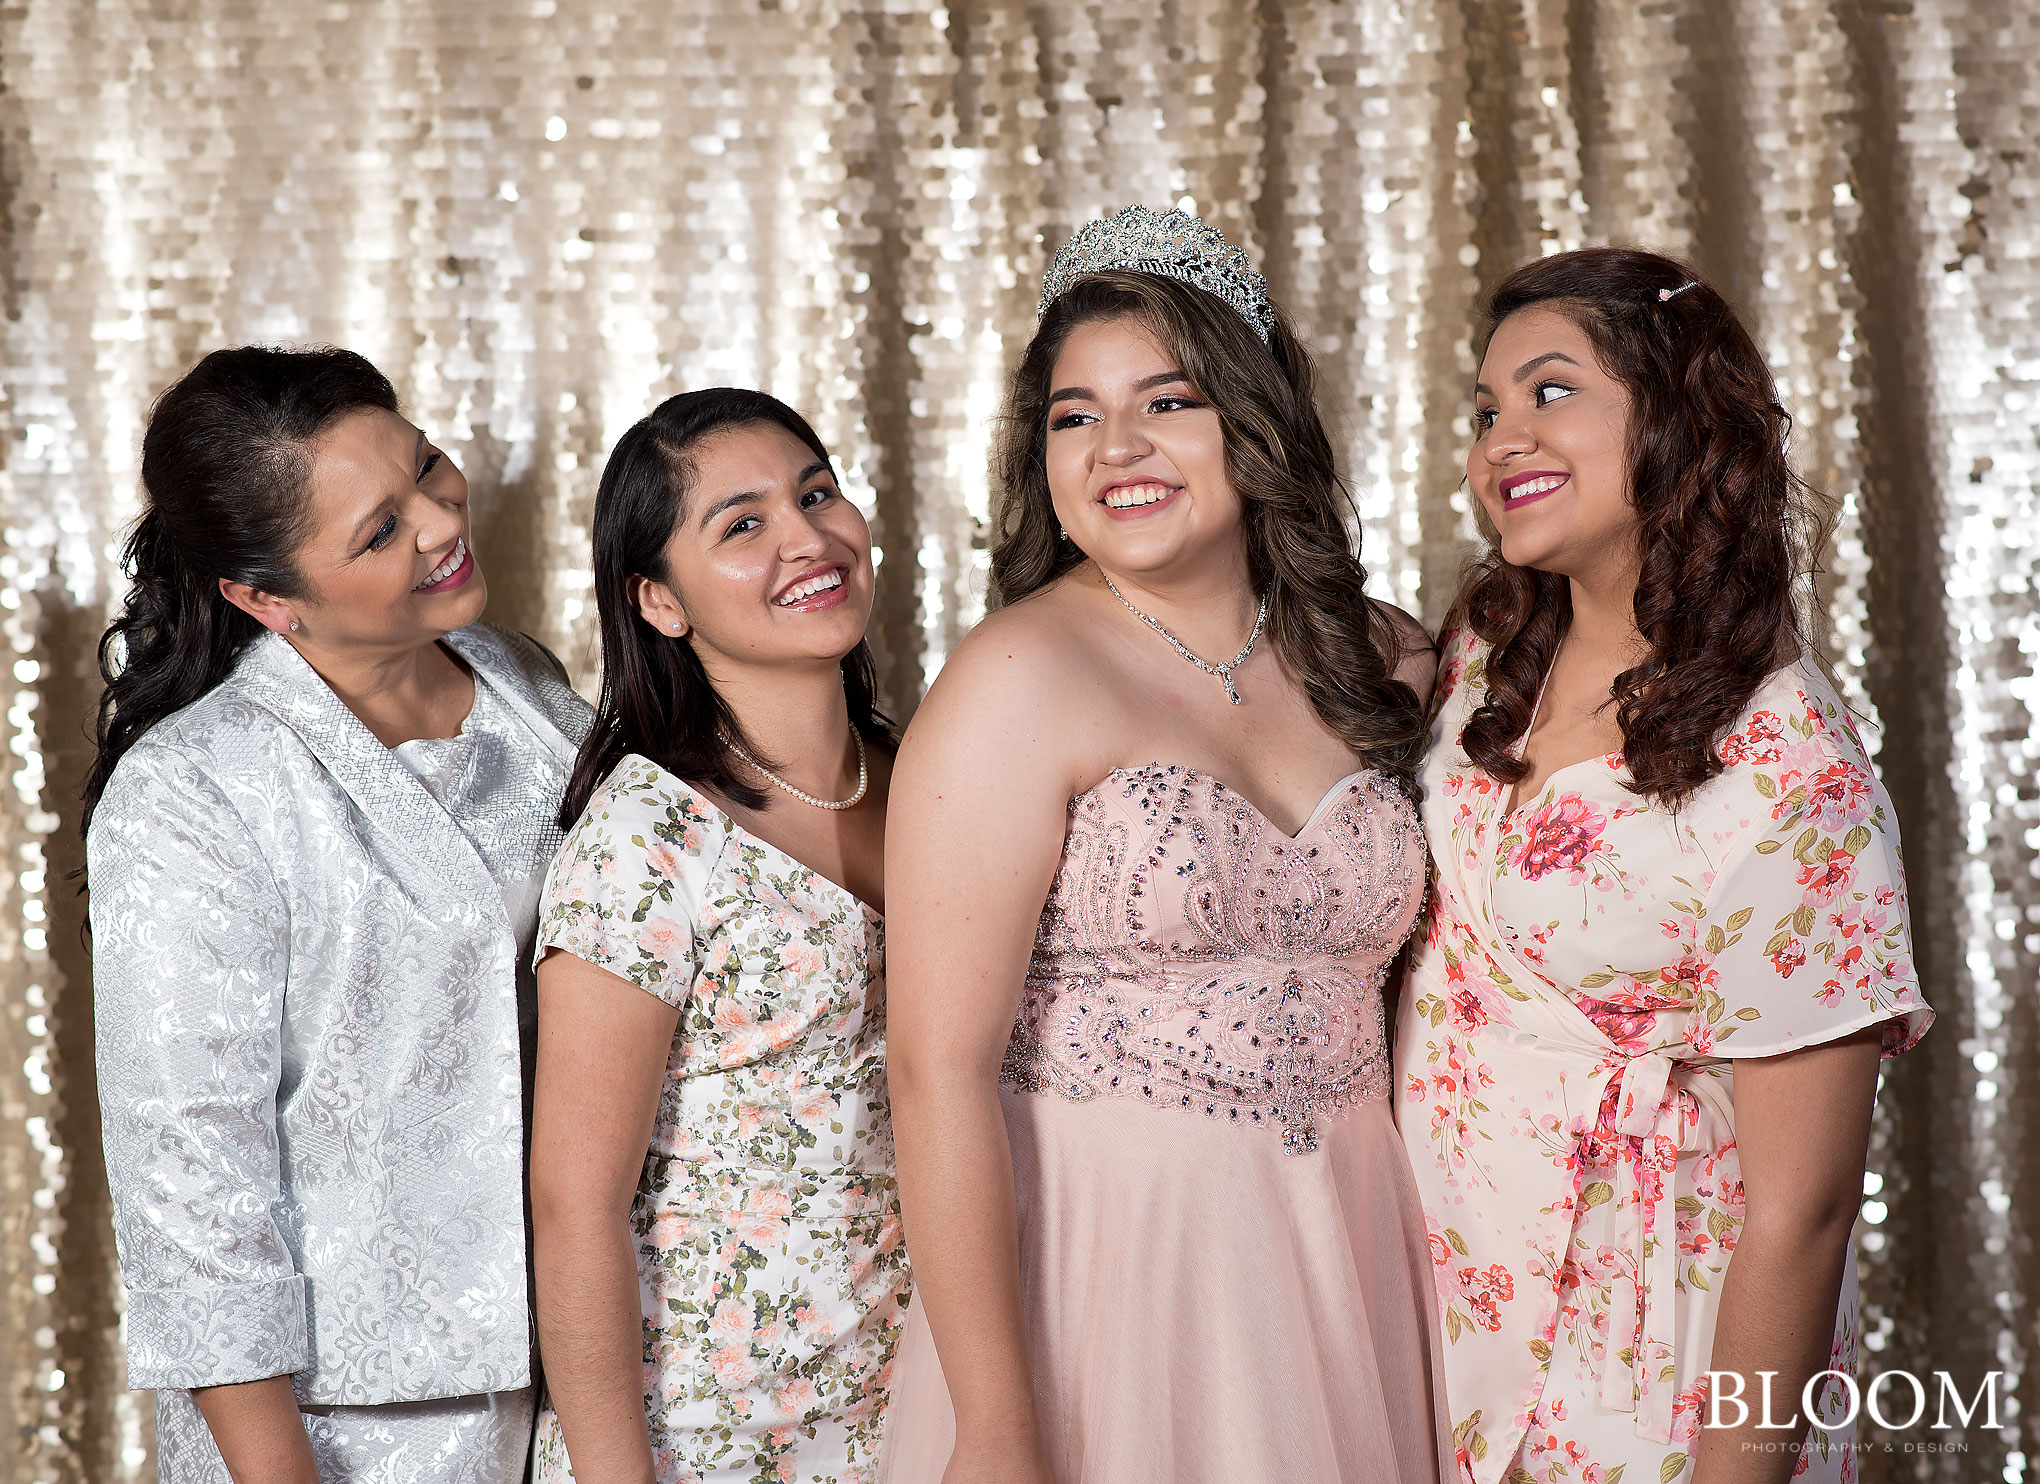 lexi_quinceanera_birthday_party_san_antonio_photographer_texas_bloom_053017_5629.jpg